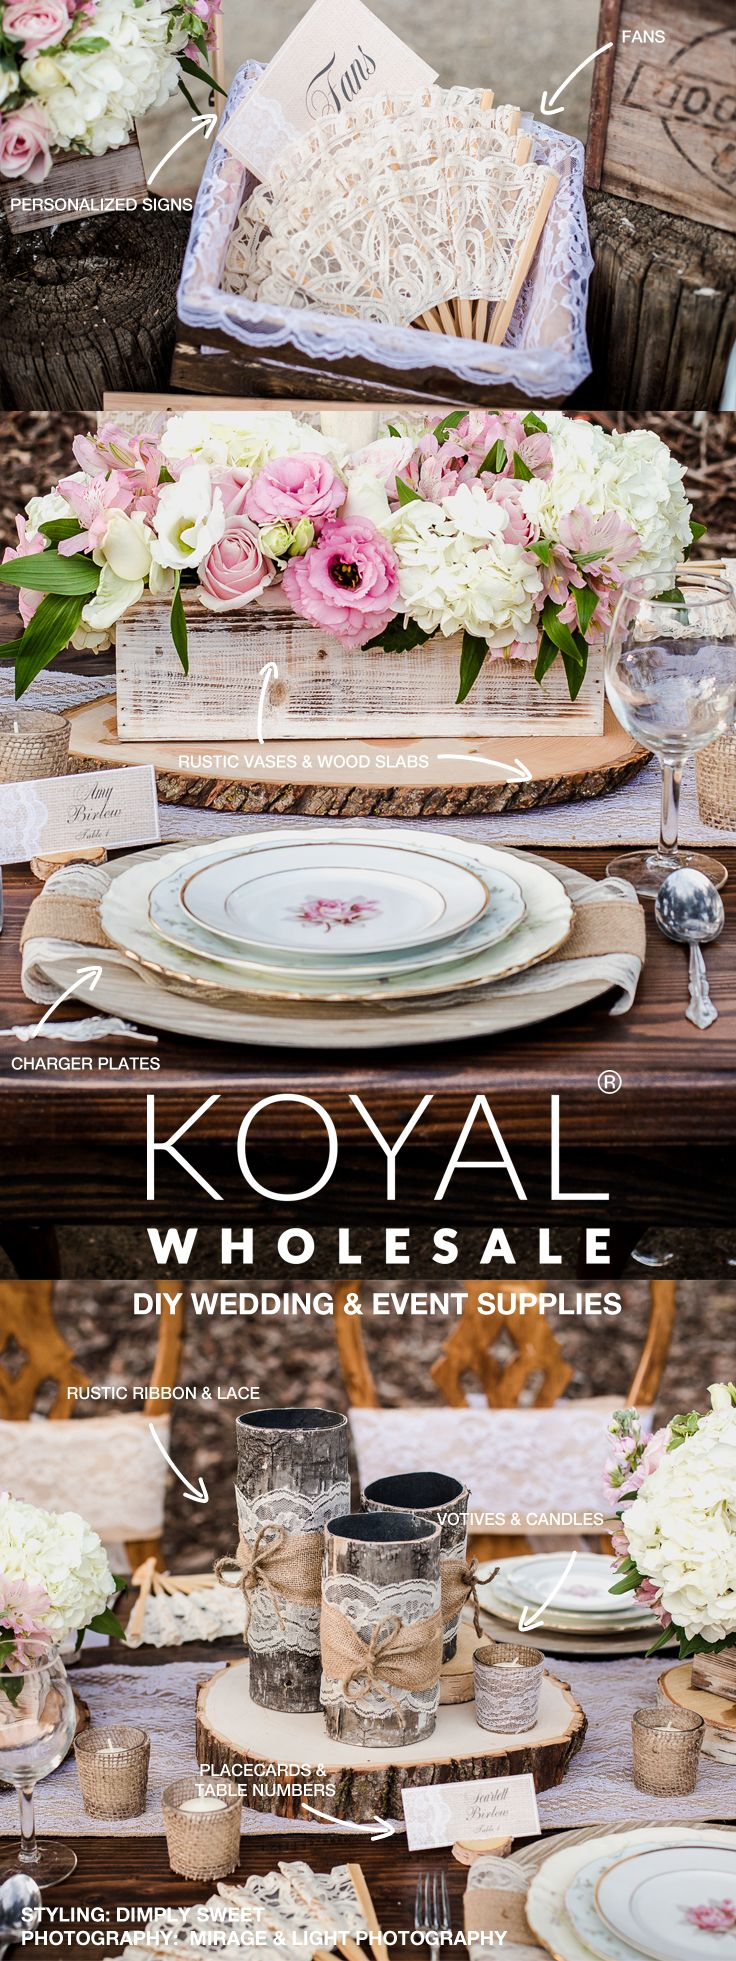 Wholesale rustic wedding supplies, event centerpieces and floral decorations on sale FREE SHIPPING on $99+  Koyal Wholesale is the destination for DIY brides, event planners, and florists looking for rustic shabby chic wholesale wedding and event supplies, ideas, and decorations  Vases, votives, chargers, table linens, branches, table centerpieces, and more!